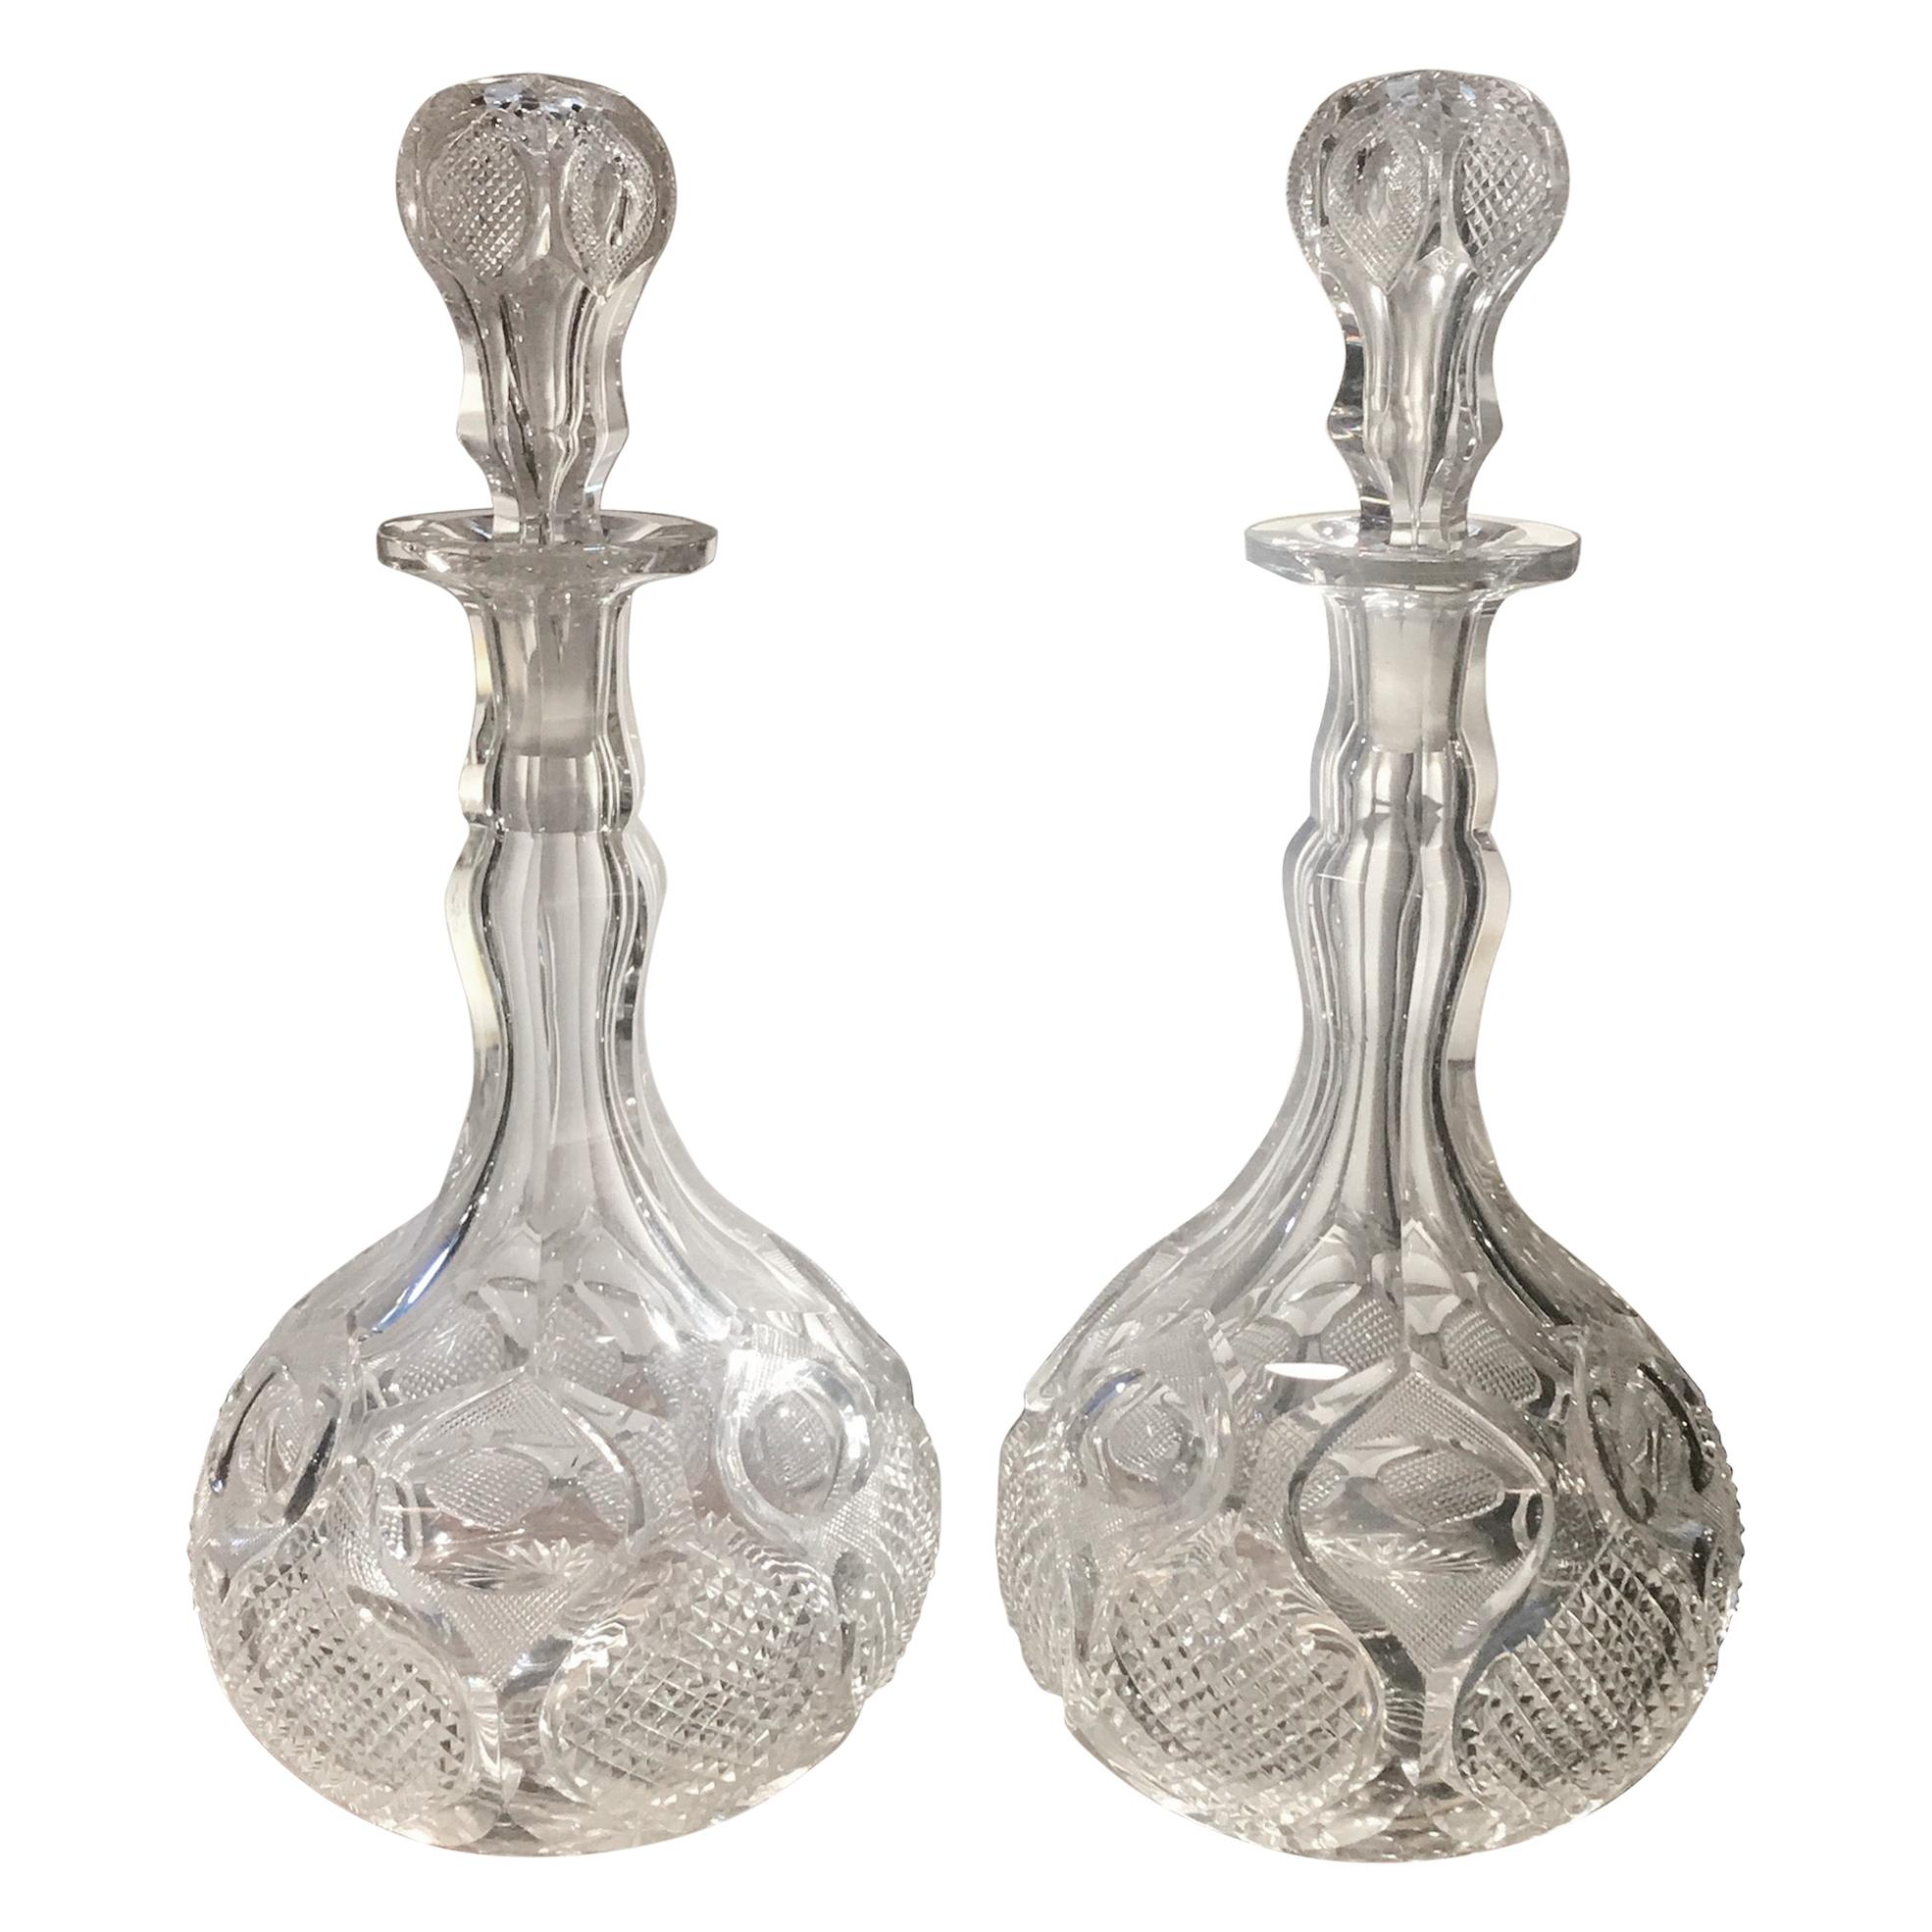 Pair of Antique 19th Century English Cut-Glass Decanters